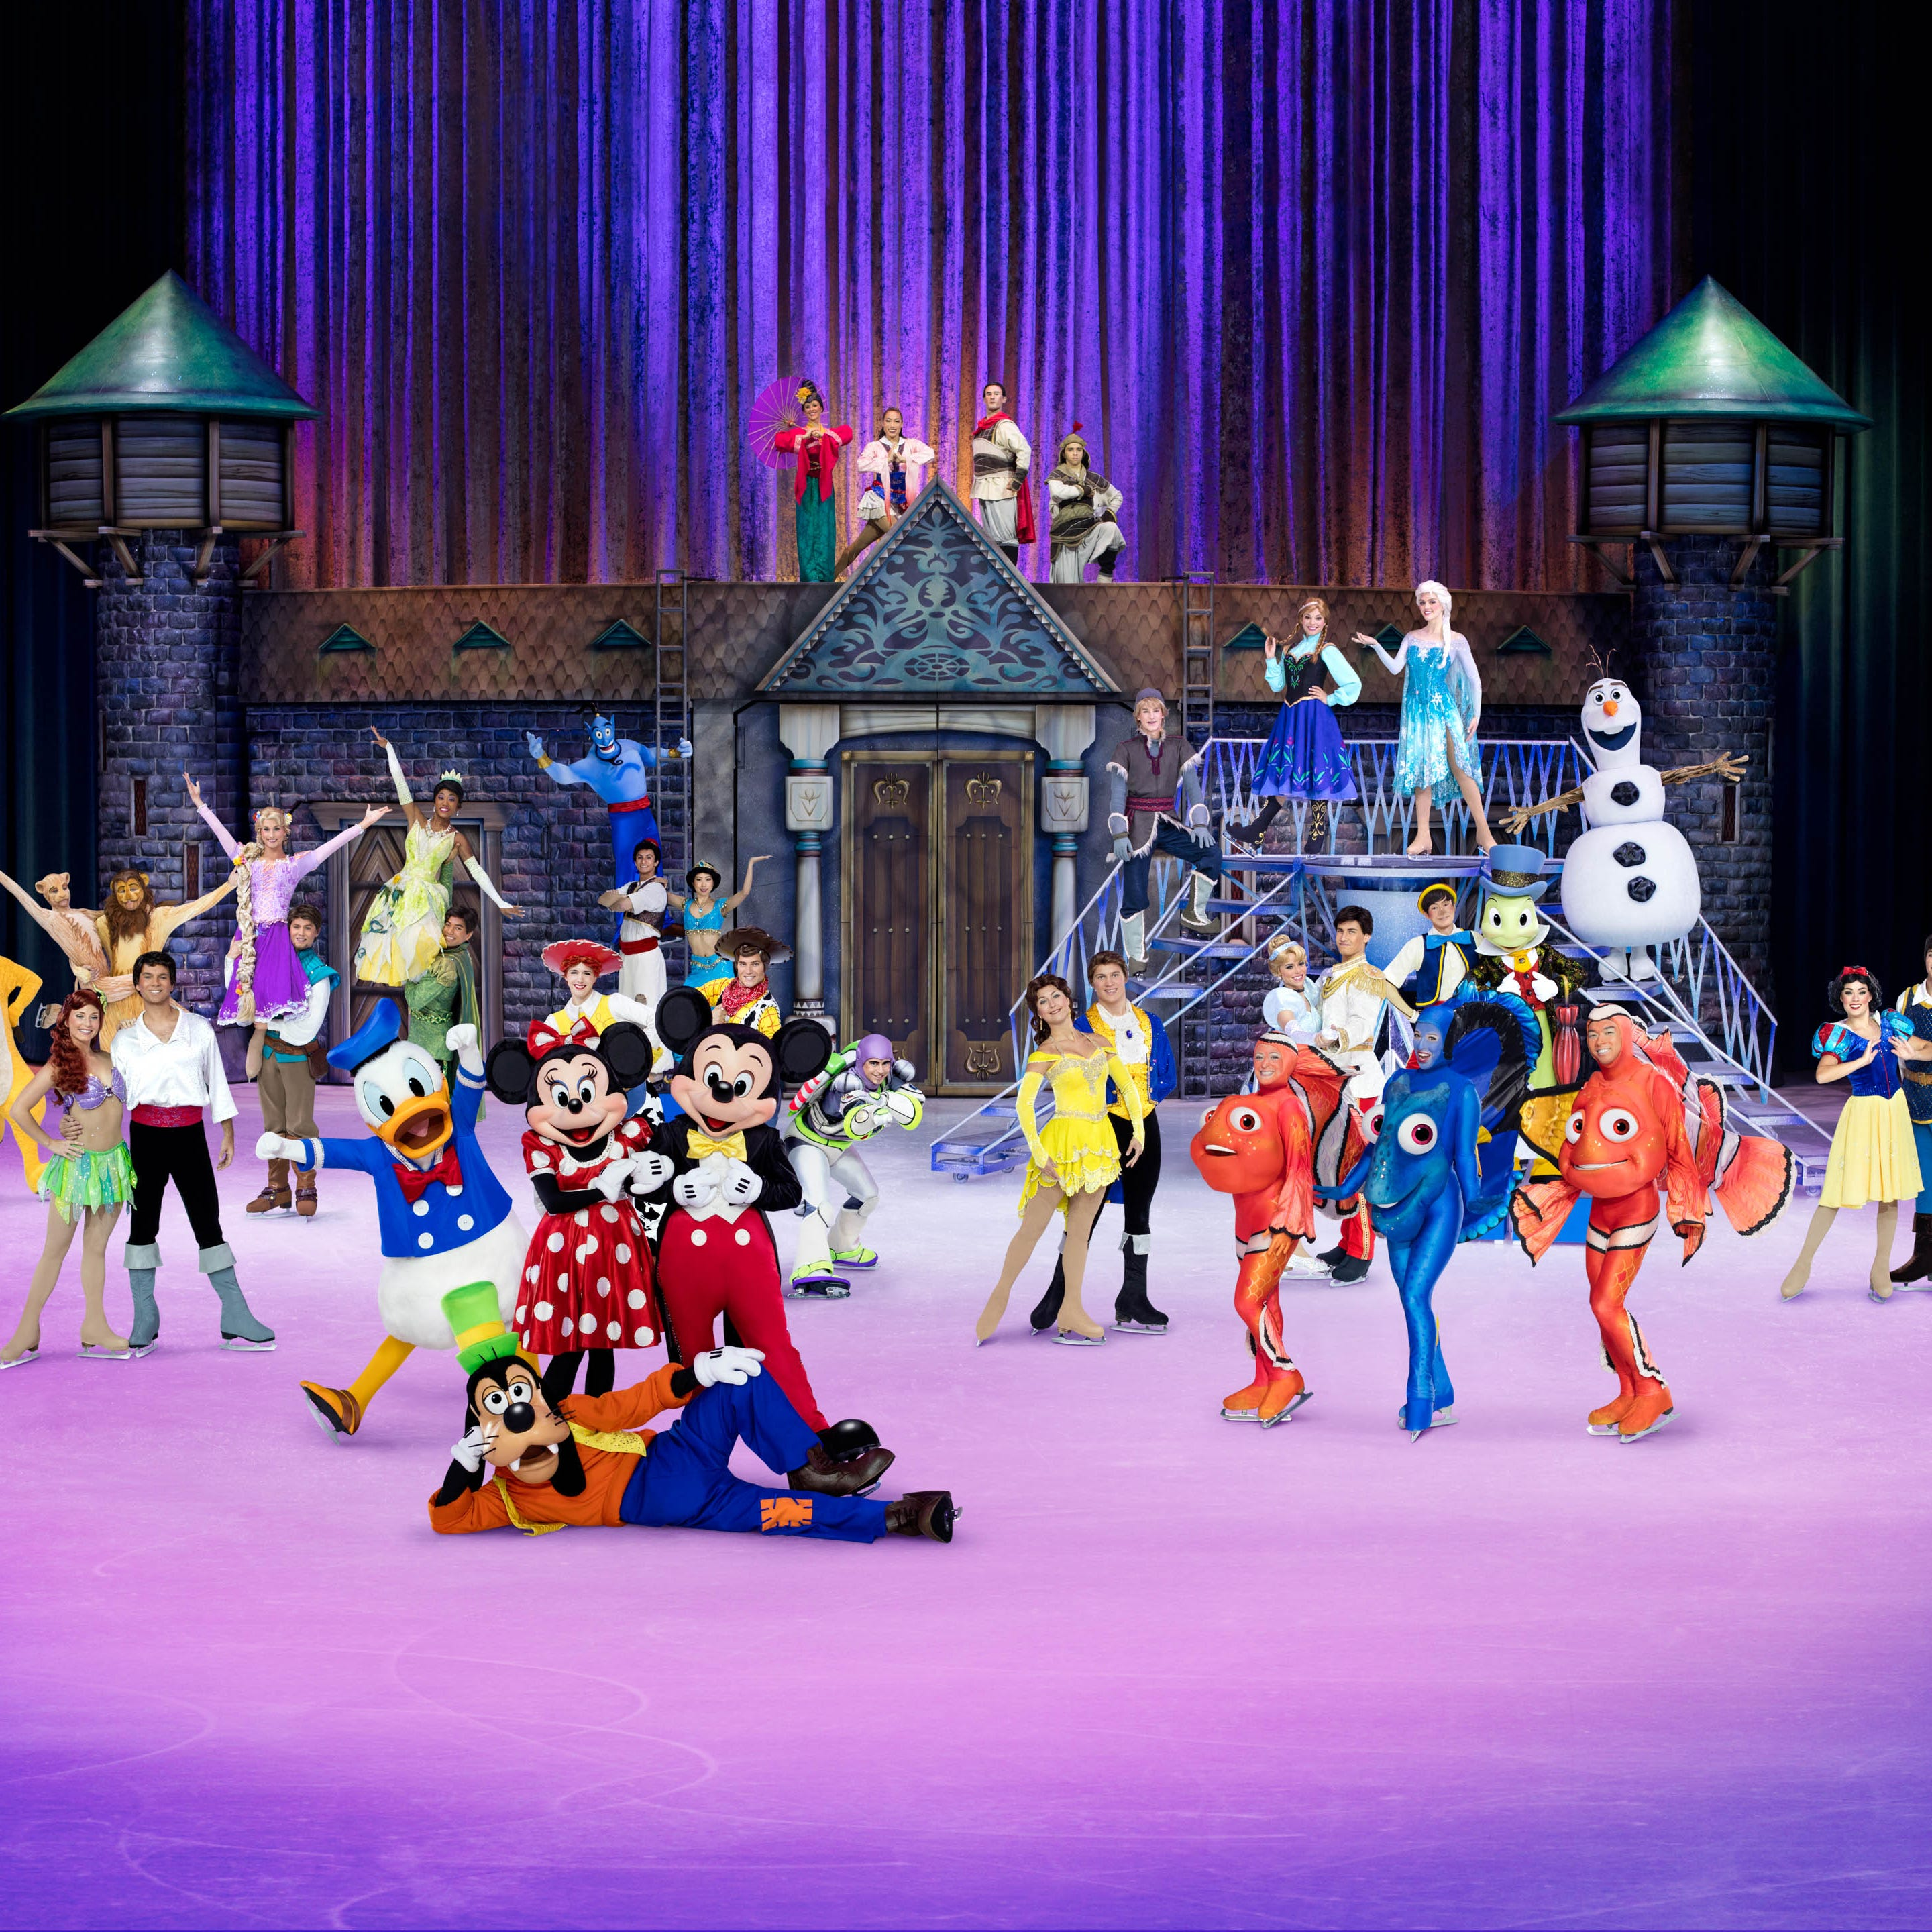 Disney on Ice tickets go on sale Oct. 30 in Green Bay